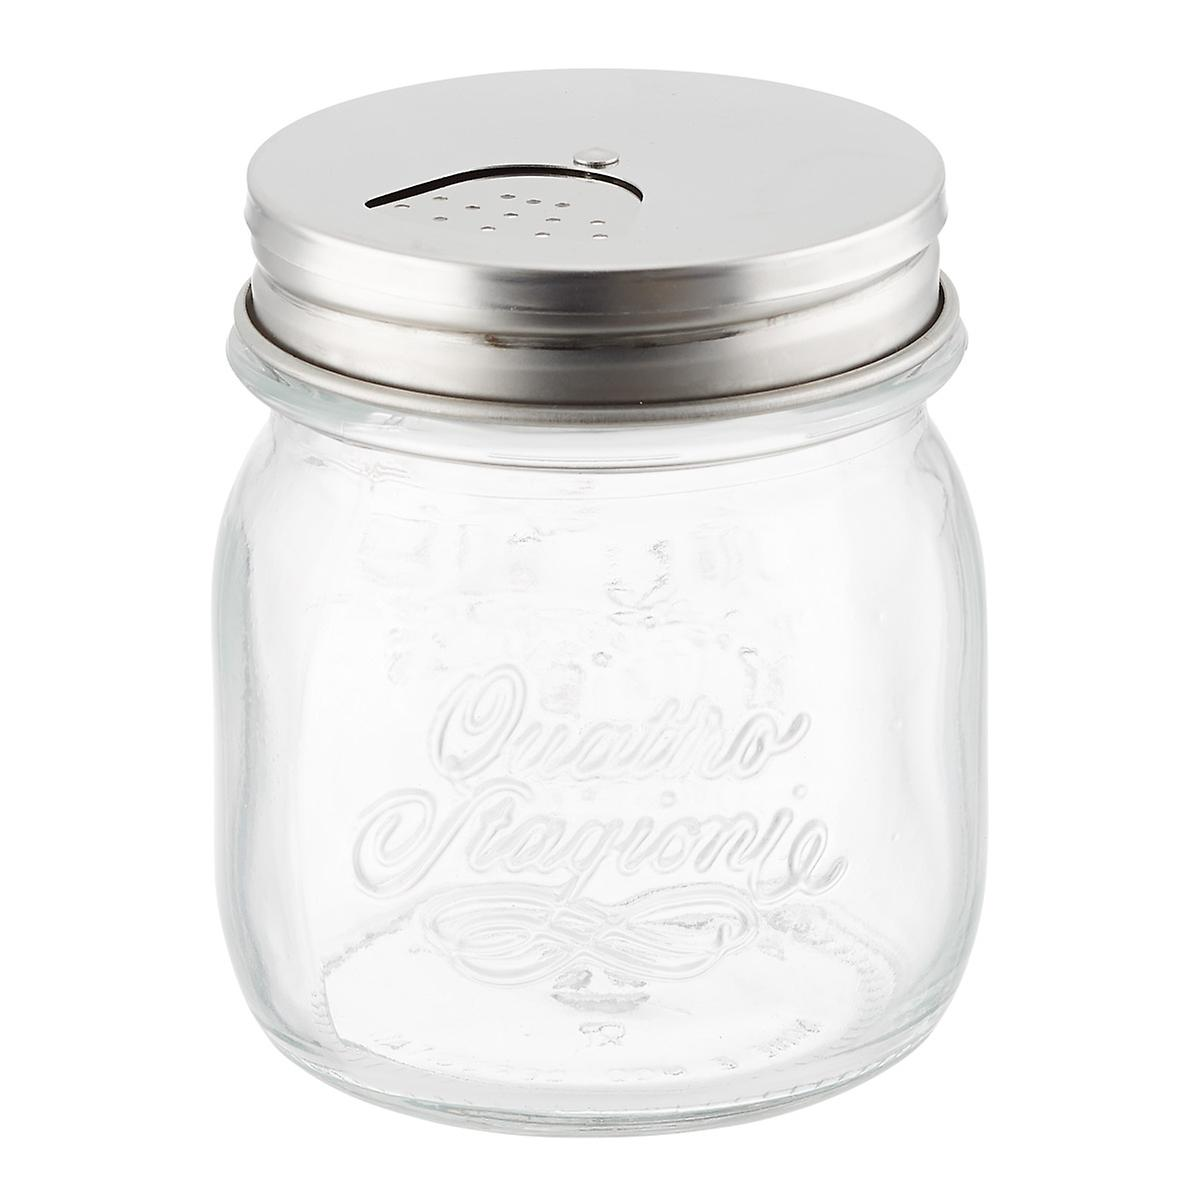 Quattro Stagioni 8 5 Oz Glass Storage Jar With Shaker Lid The Container Store